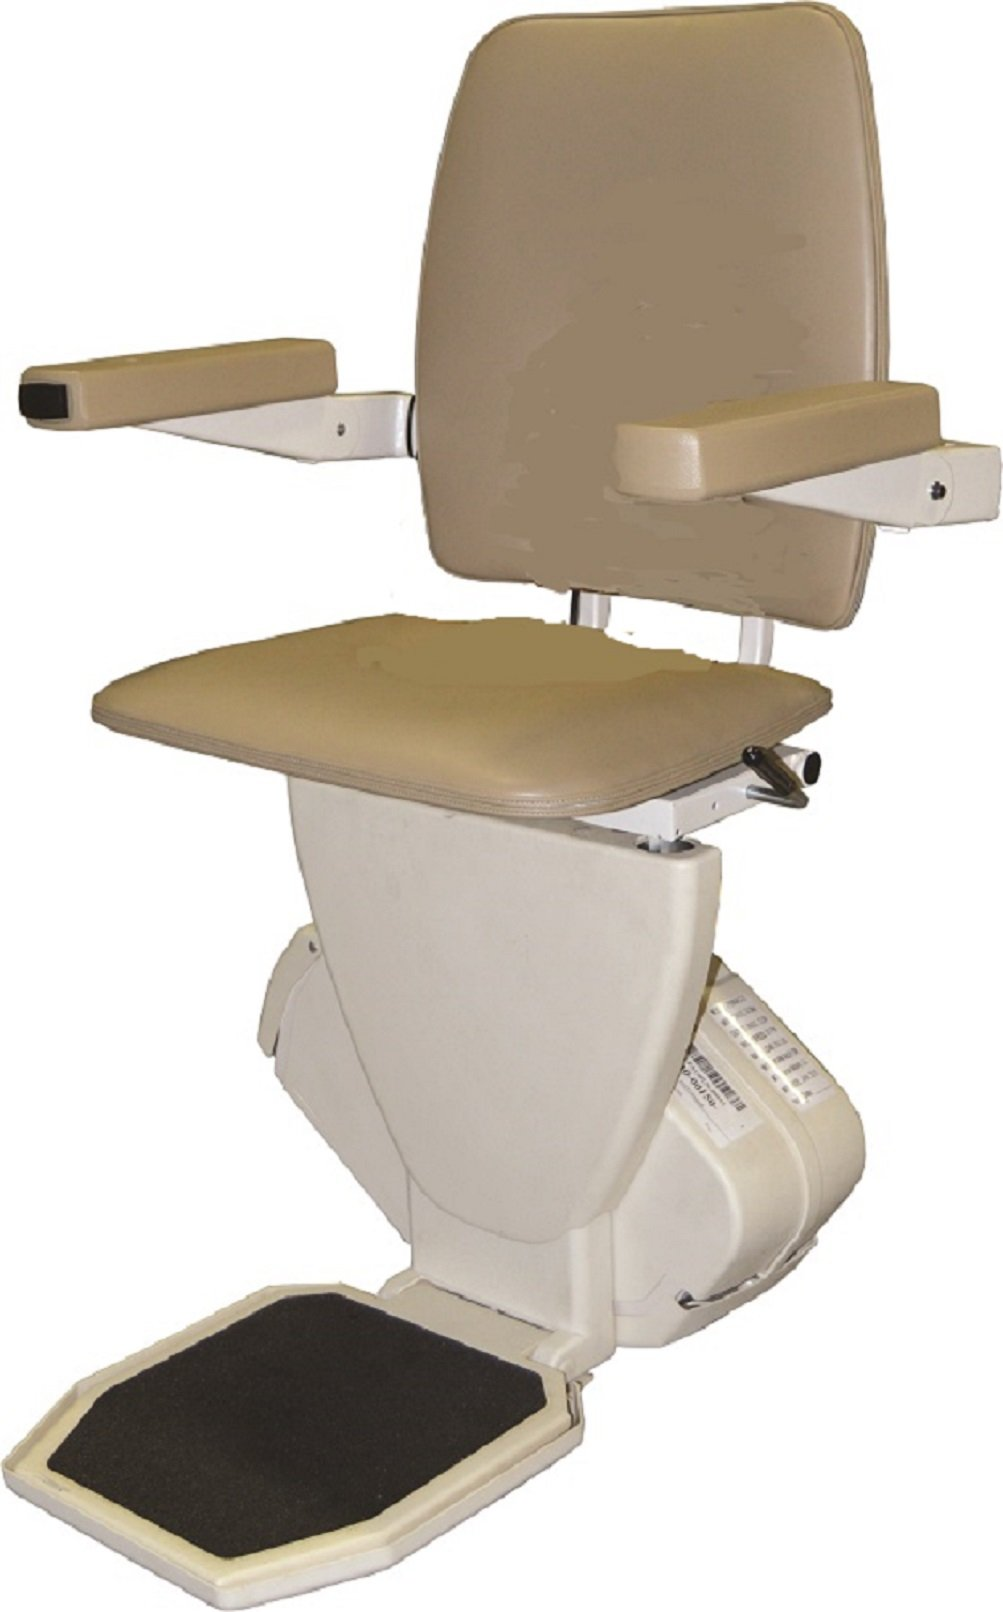 Medallion StairLift - NEVER Needs Grease + LIFETIME Warranty on Motor & Circuit Board